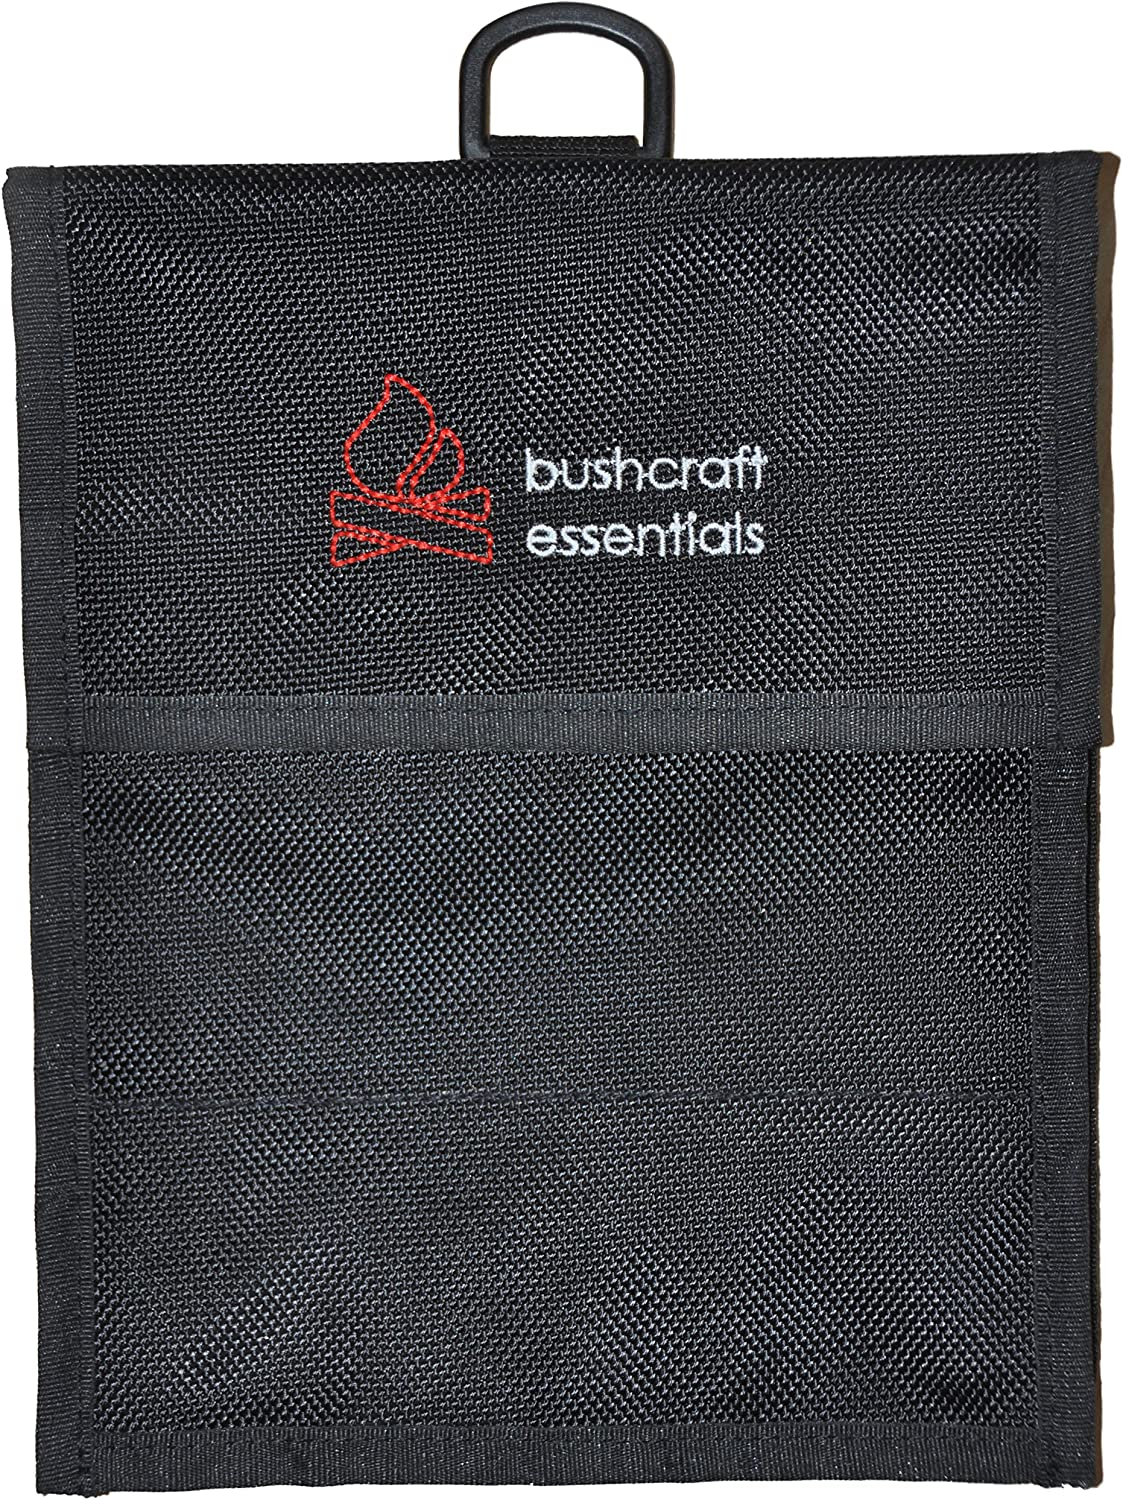 Bushcraft Essentials Heavy Duty Outdoor Bag Bushbox XL